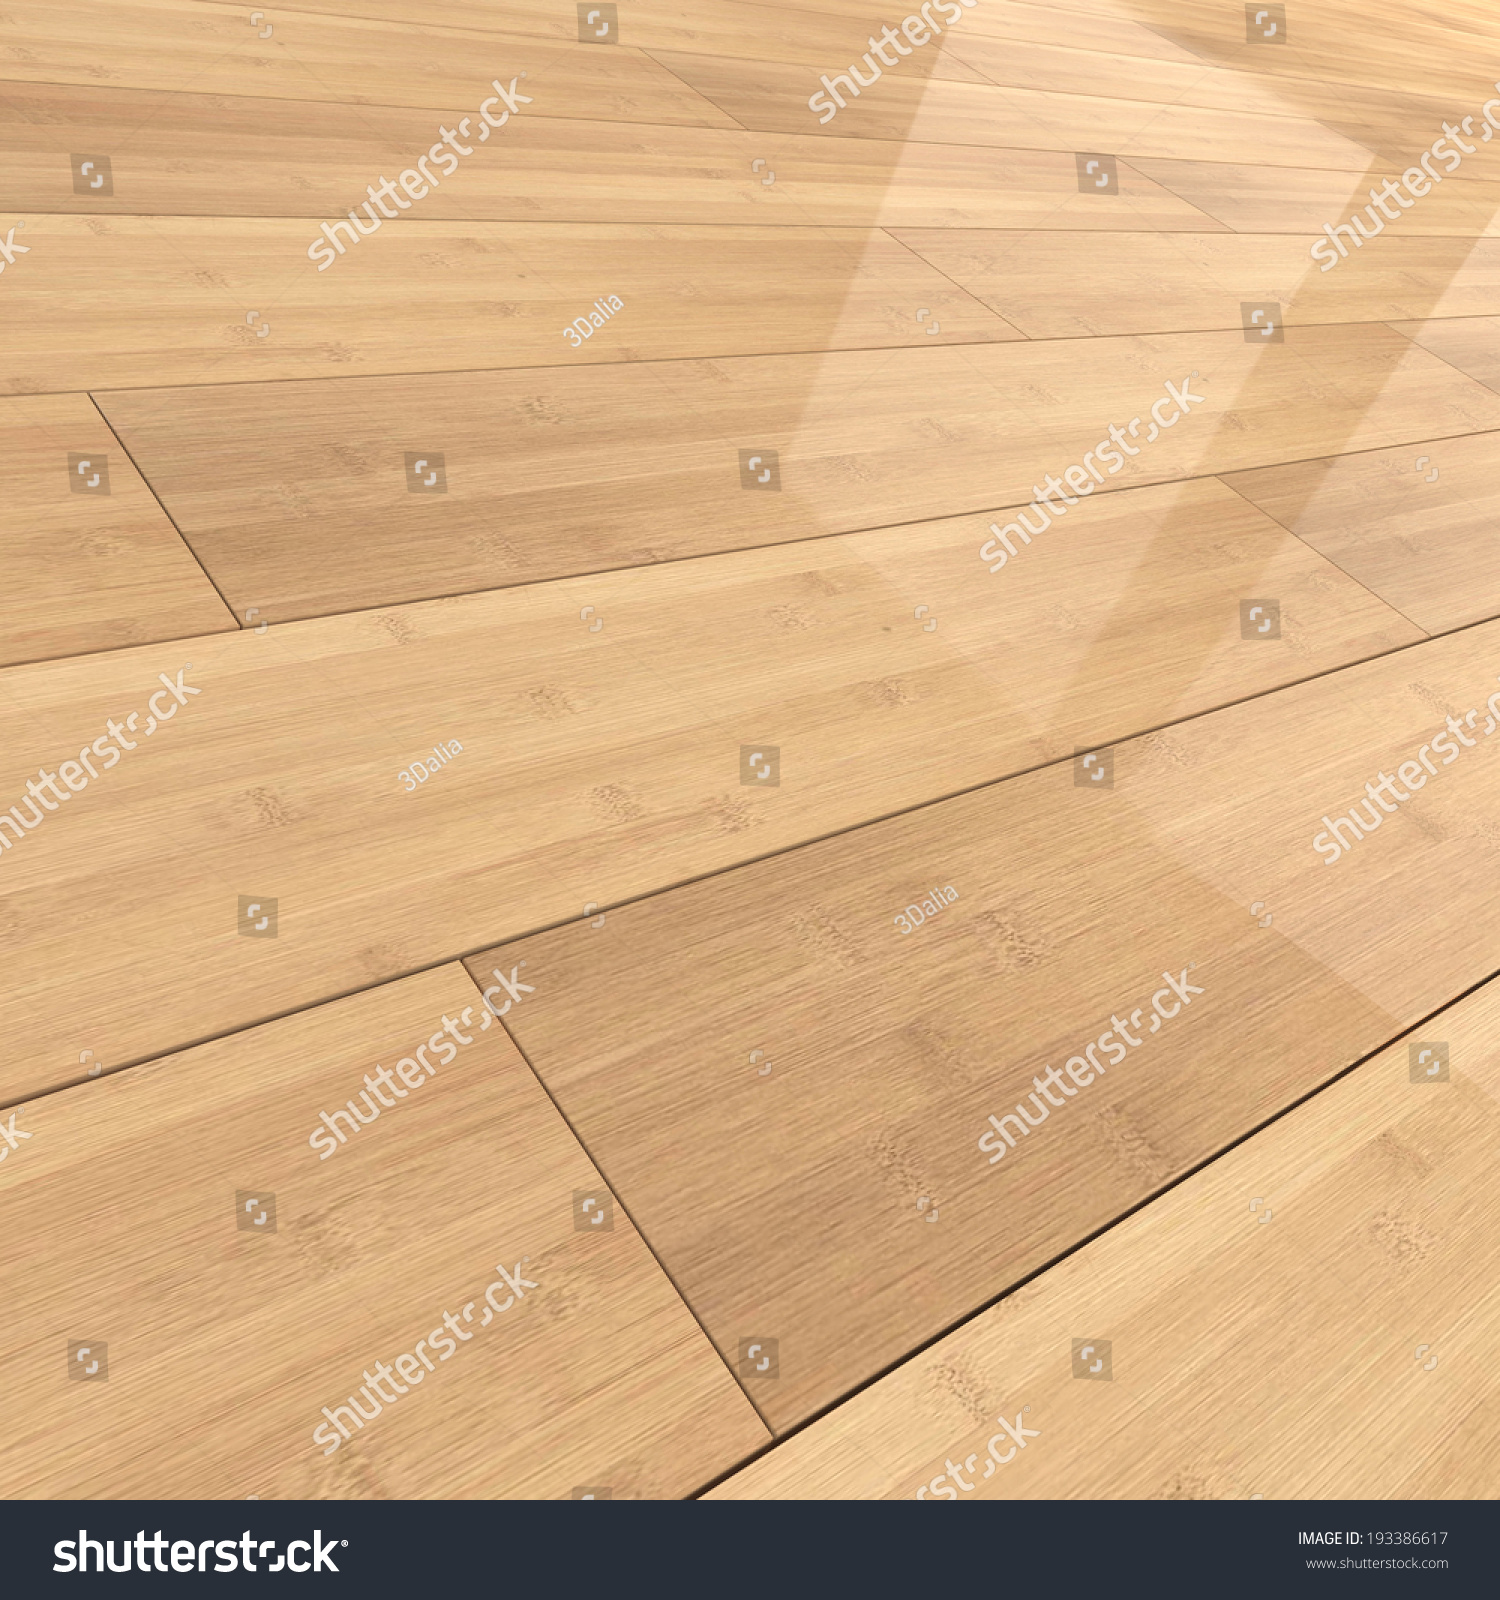 3d render bamboo flooring tiles stock illustration 193386617 3d render of bamboo flooring tiles dailygadgetfo Image collections